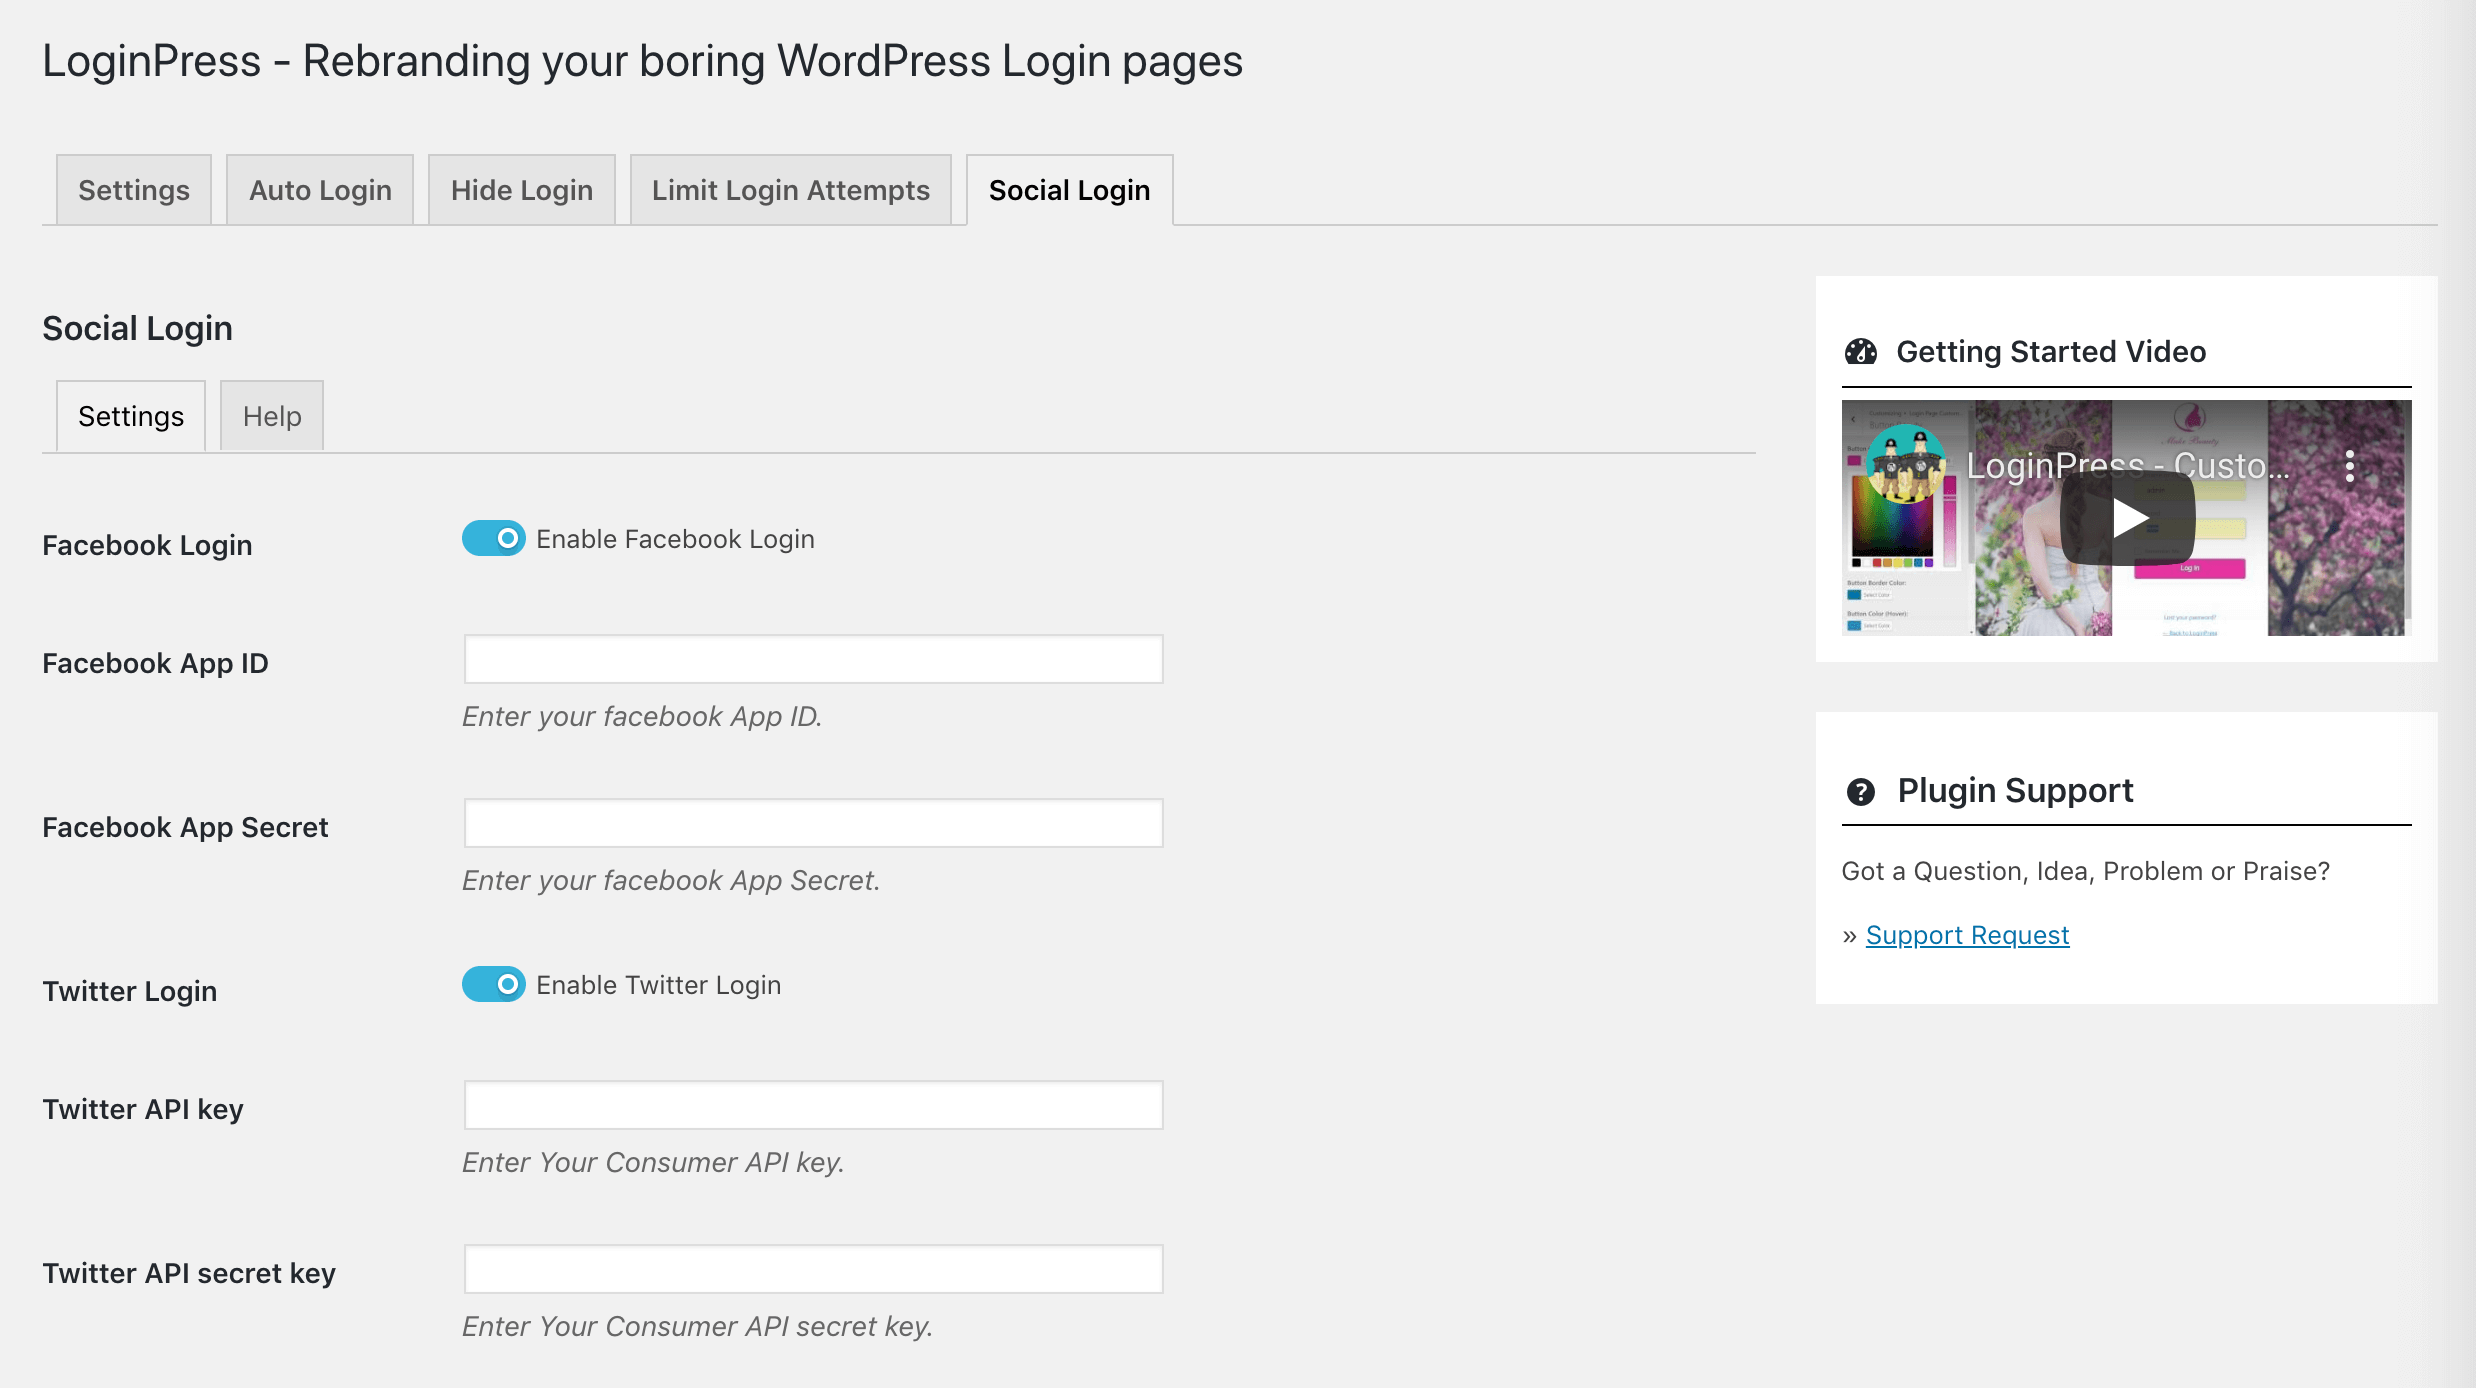 The LoginPress Social Login settings.